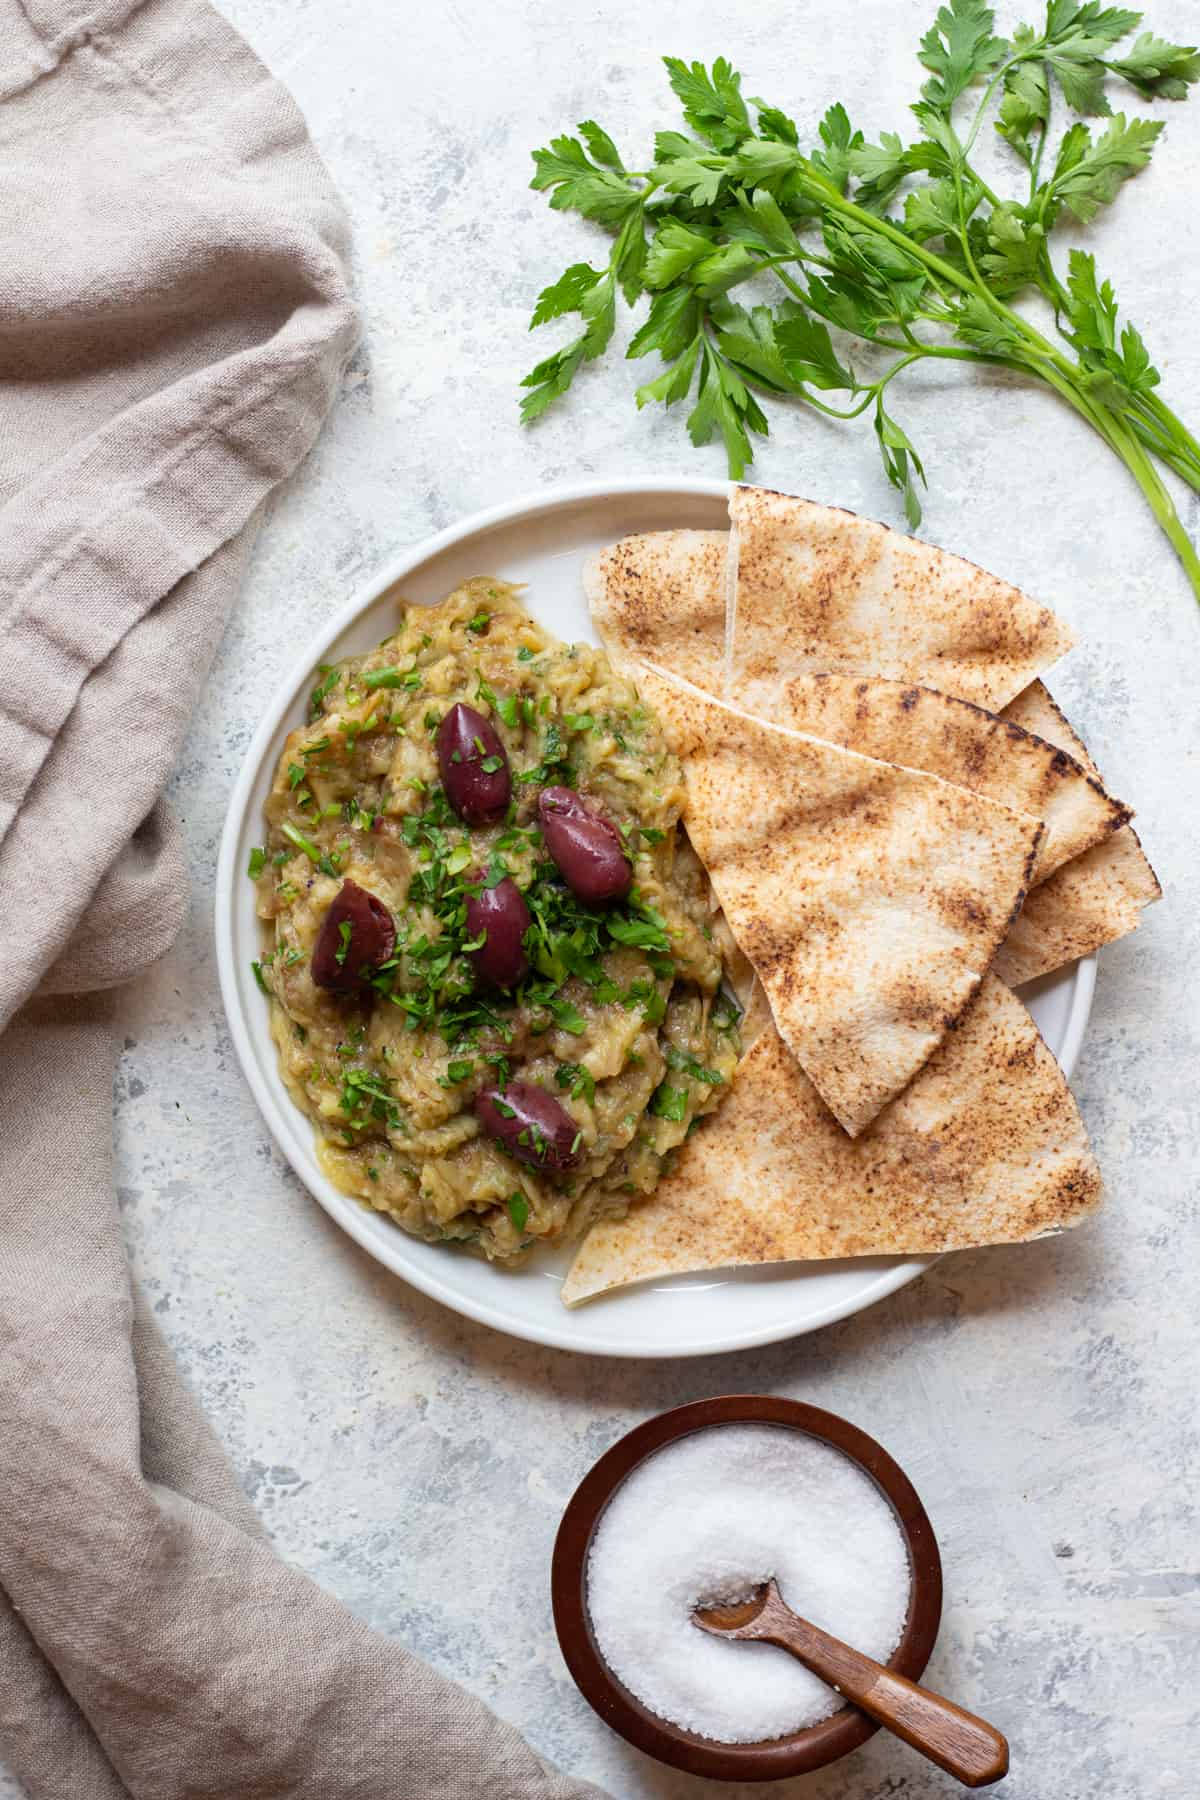 a plate of eggplant dip topped with olives and served with pita.